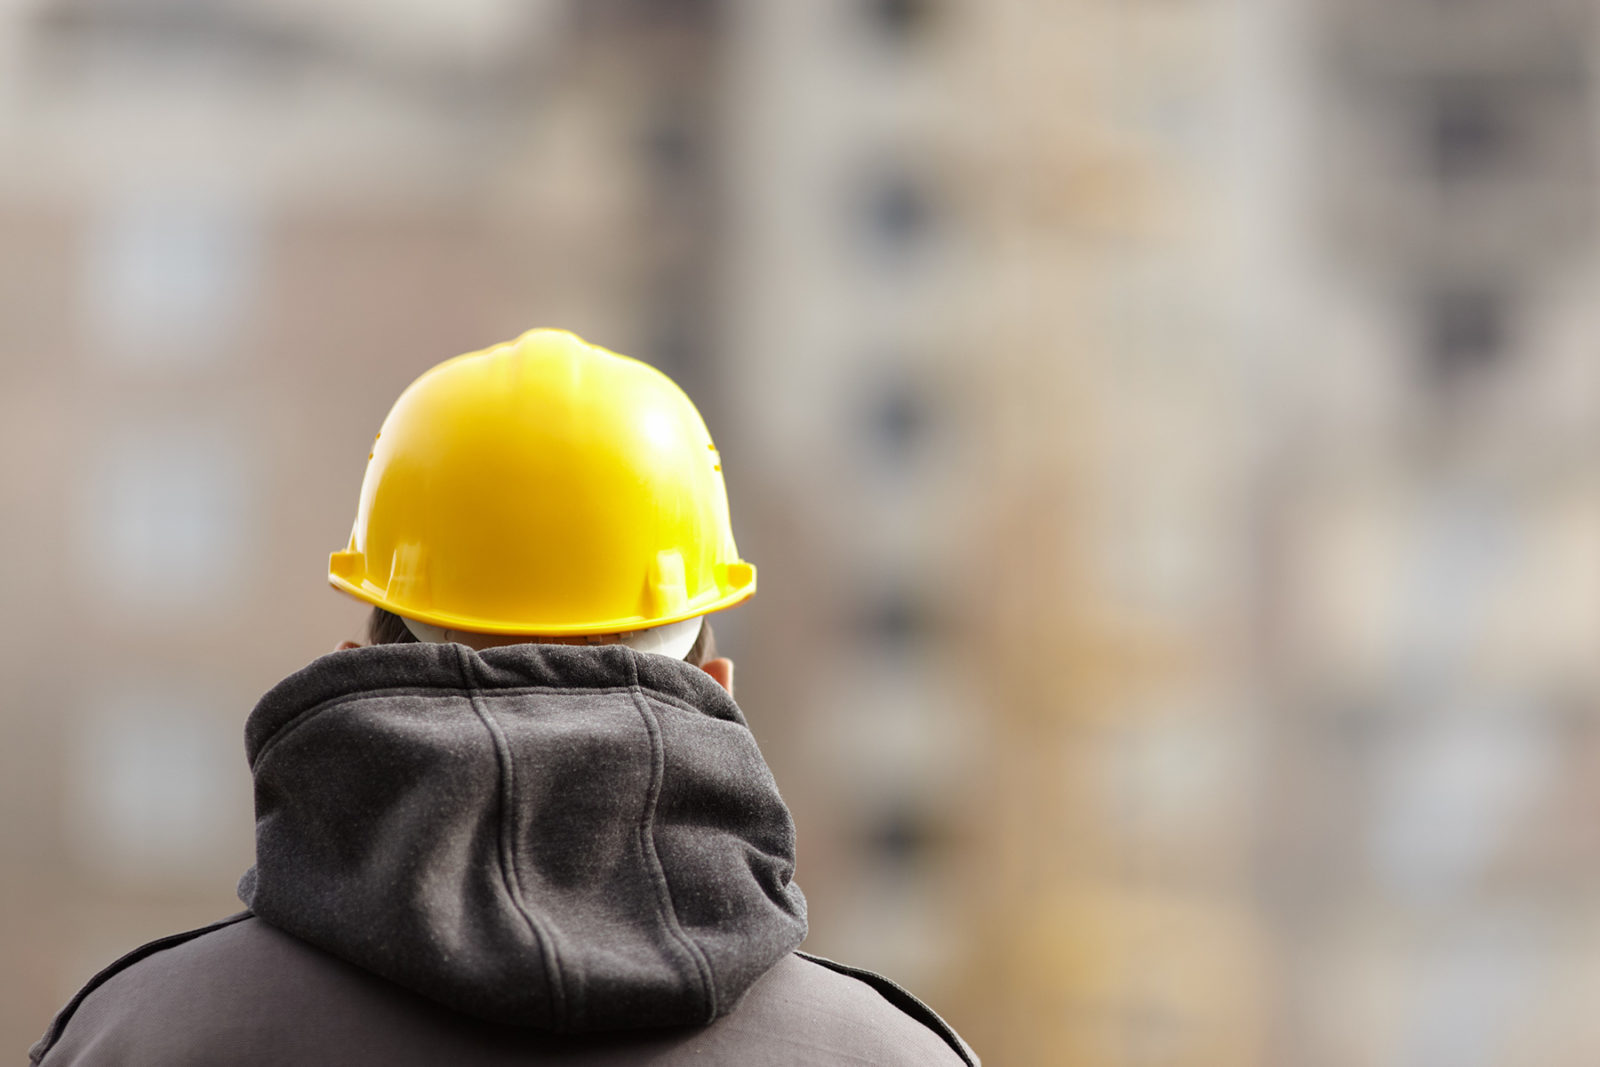 Tradie with hard hat on site thinking about mental health